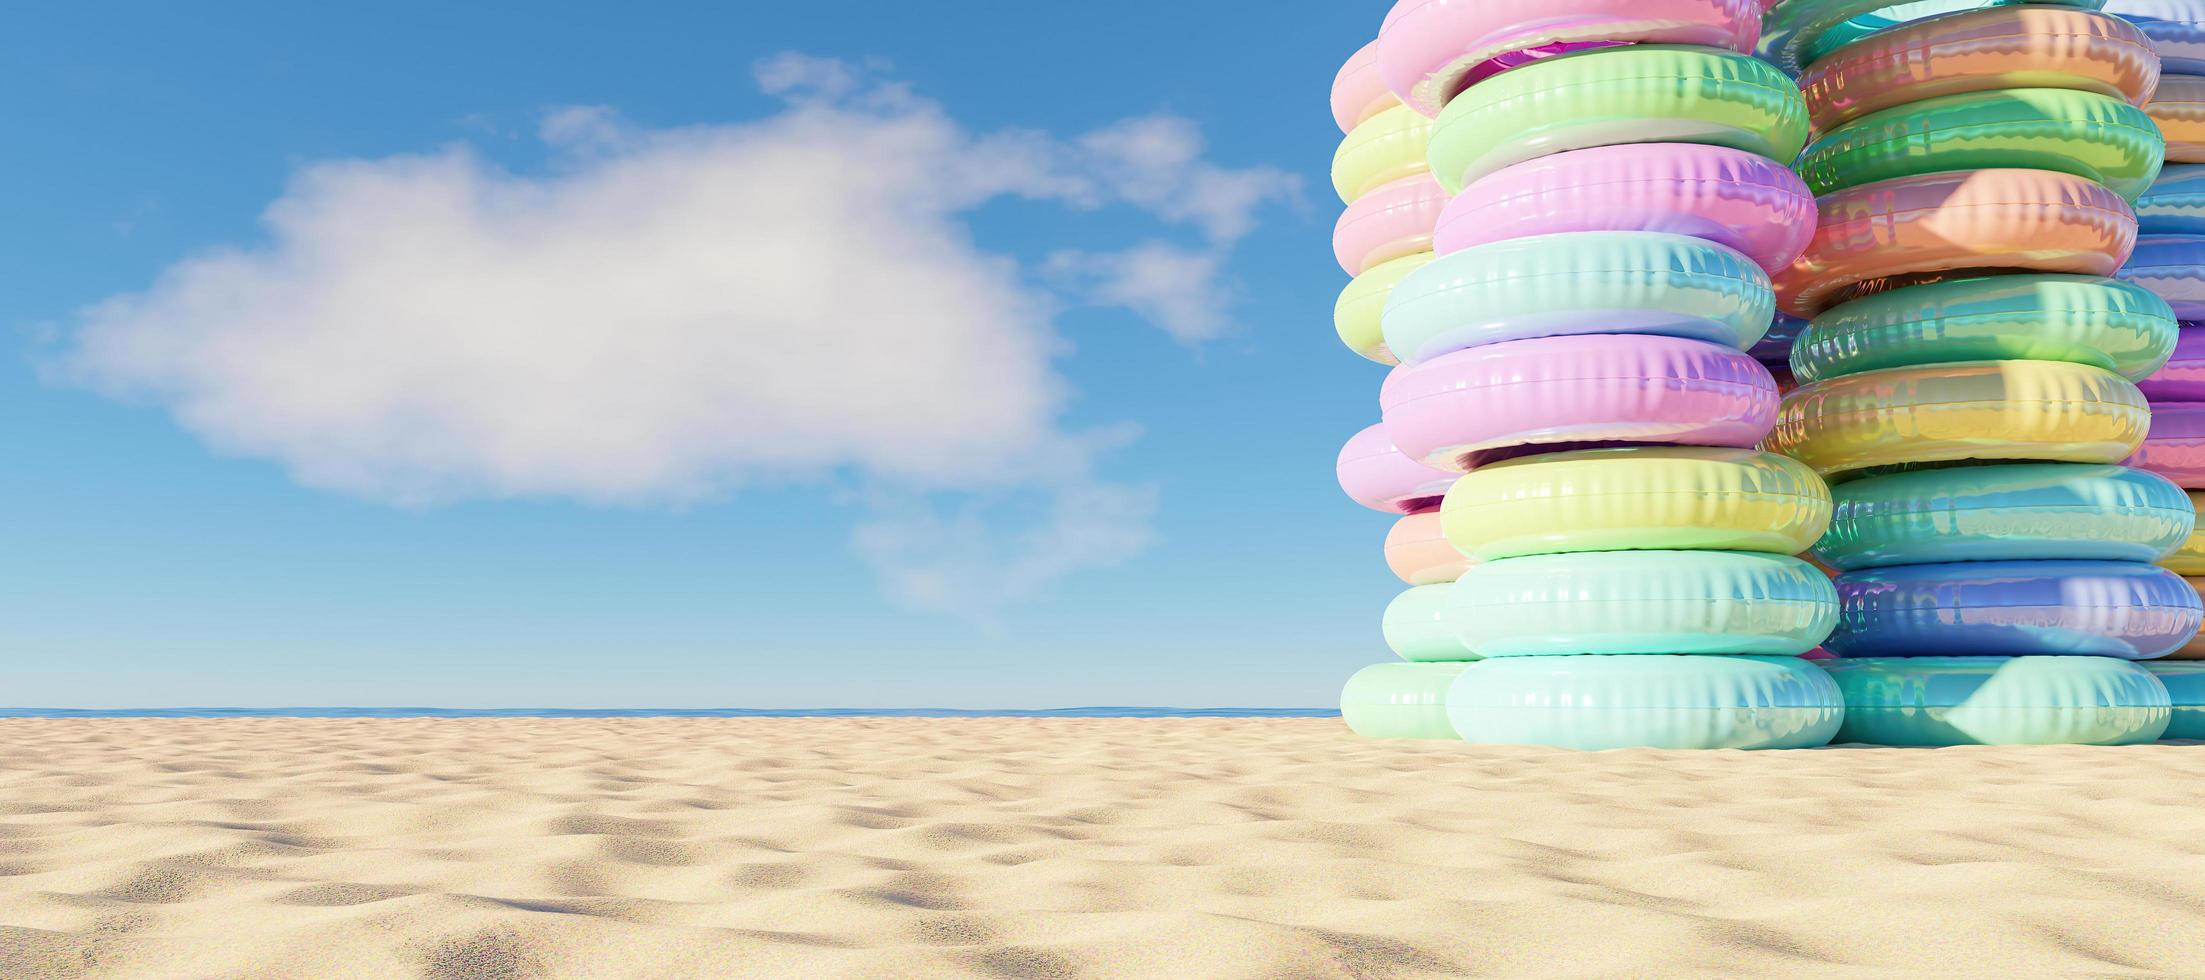 Tower of inflatable rings on the beach, 3d render photo